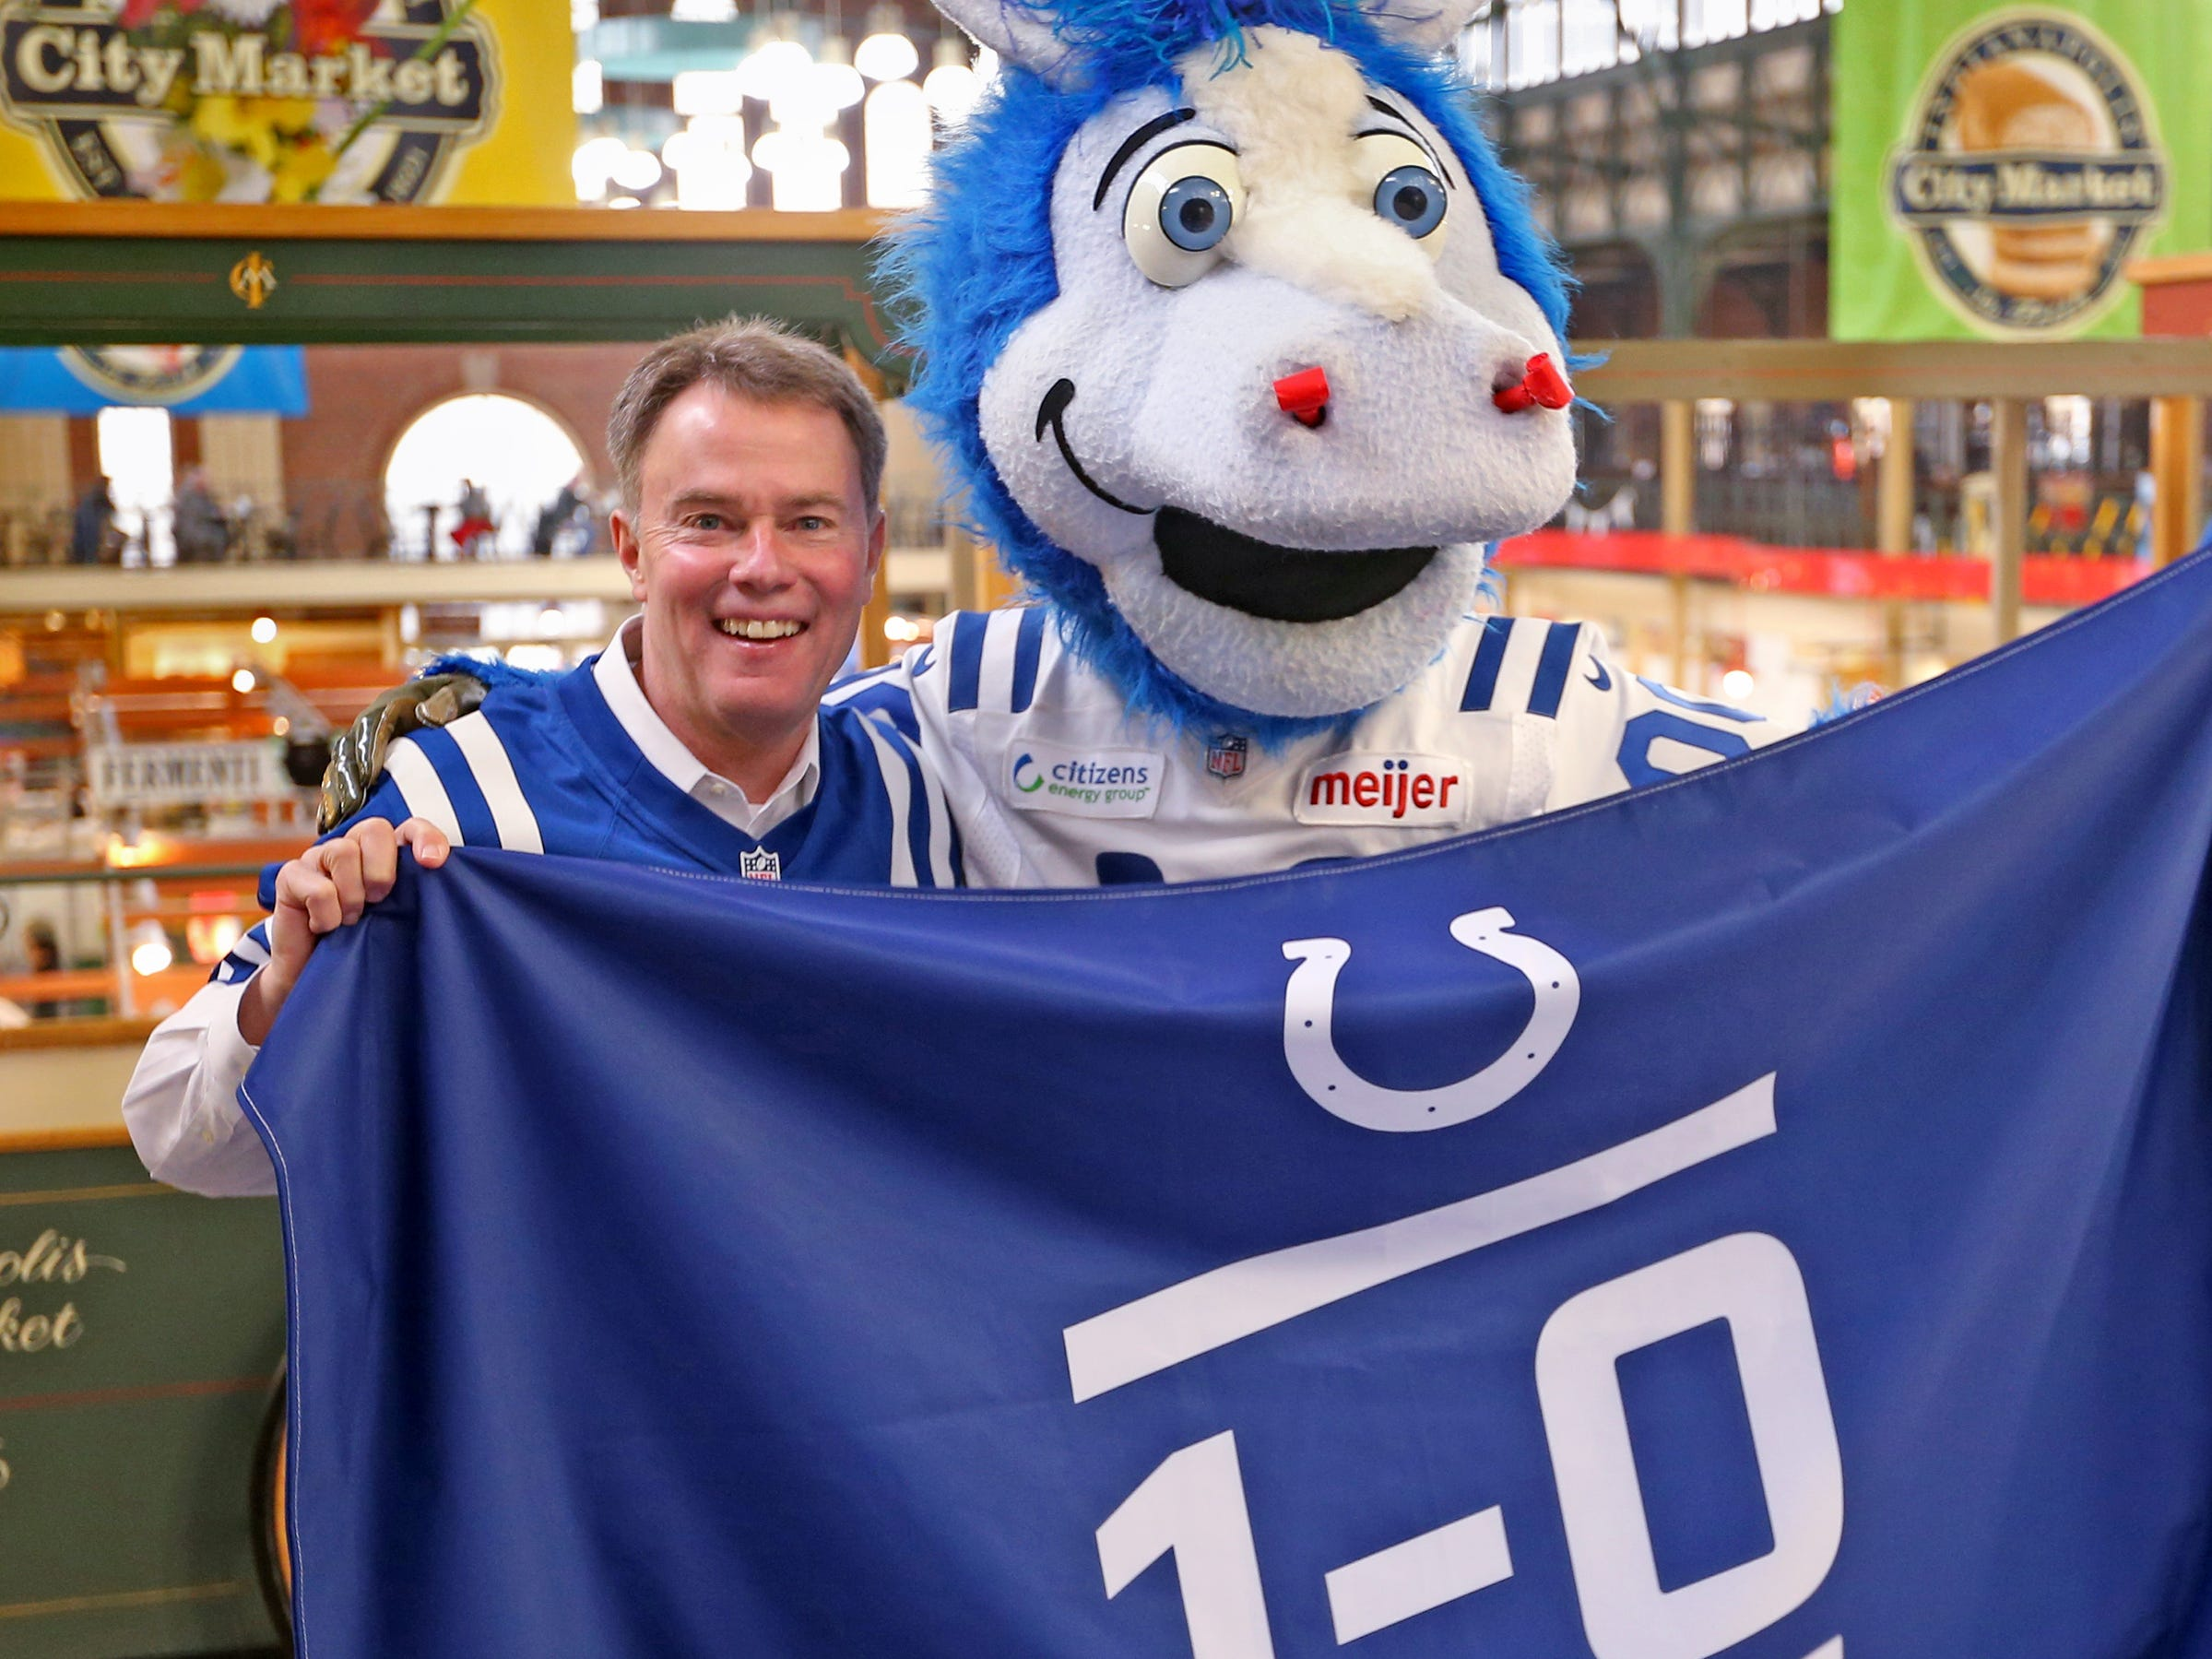 After Mayor Joe Hogsett and Colts mascot Blue signed a 1-0 banner for the Colts at City Market, Thursday, Jan. 10, 2019, the Colts presented his own 1-0 flag to the mayor.  The signed banner will be displayed for the team to see at the airport as they head off to their Kansas City playoff game.